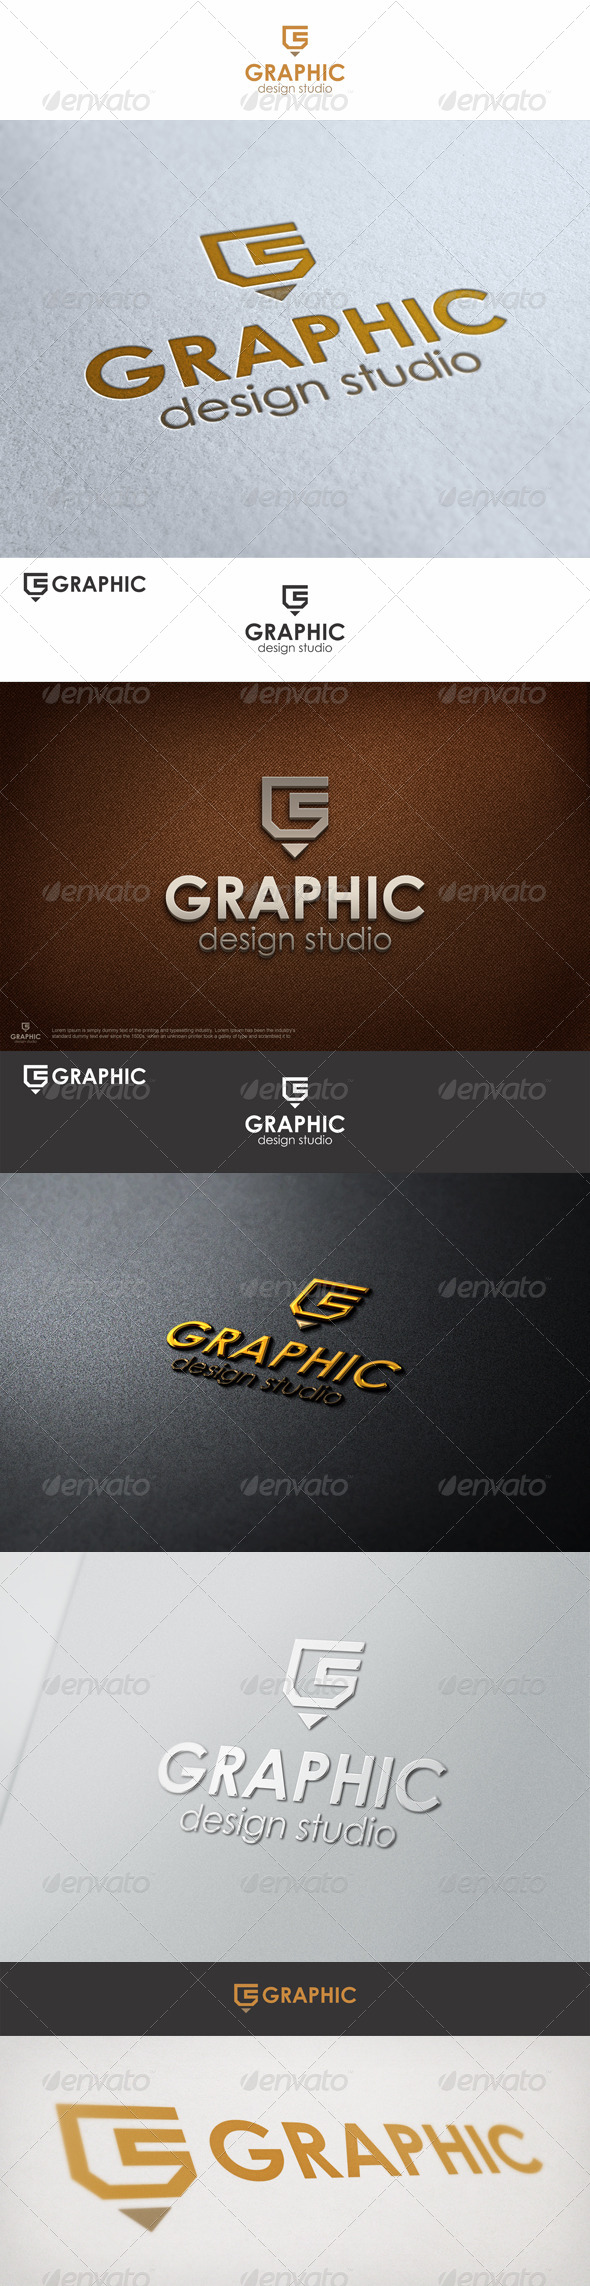 Graphic Pencil Studio Logo G - Vector Abstract